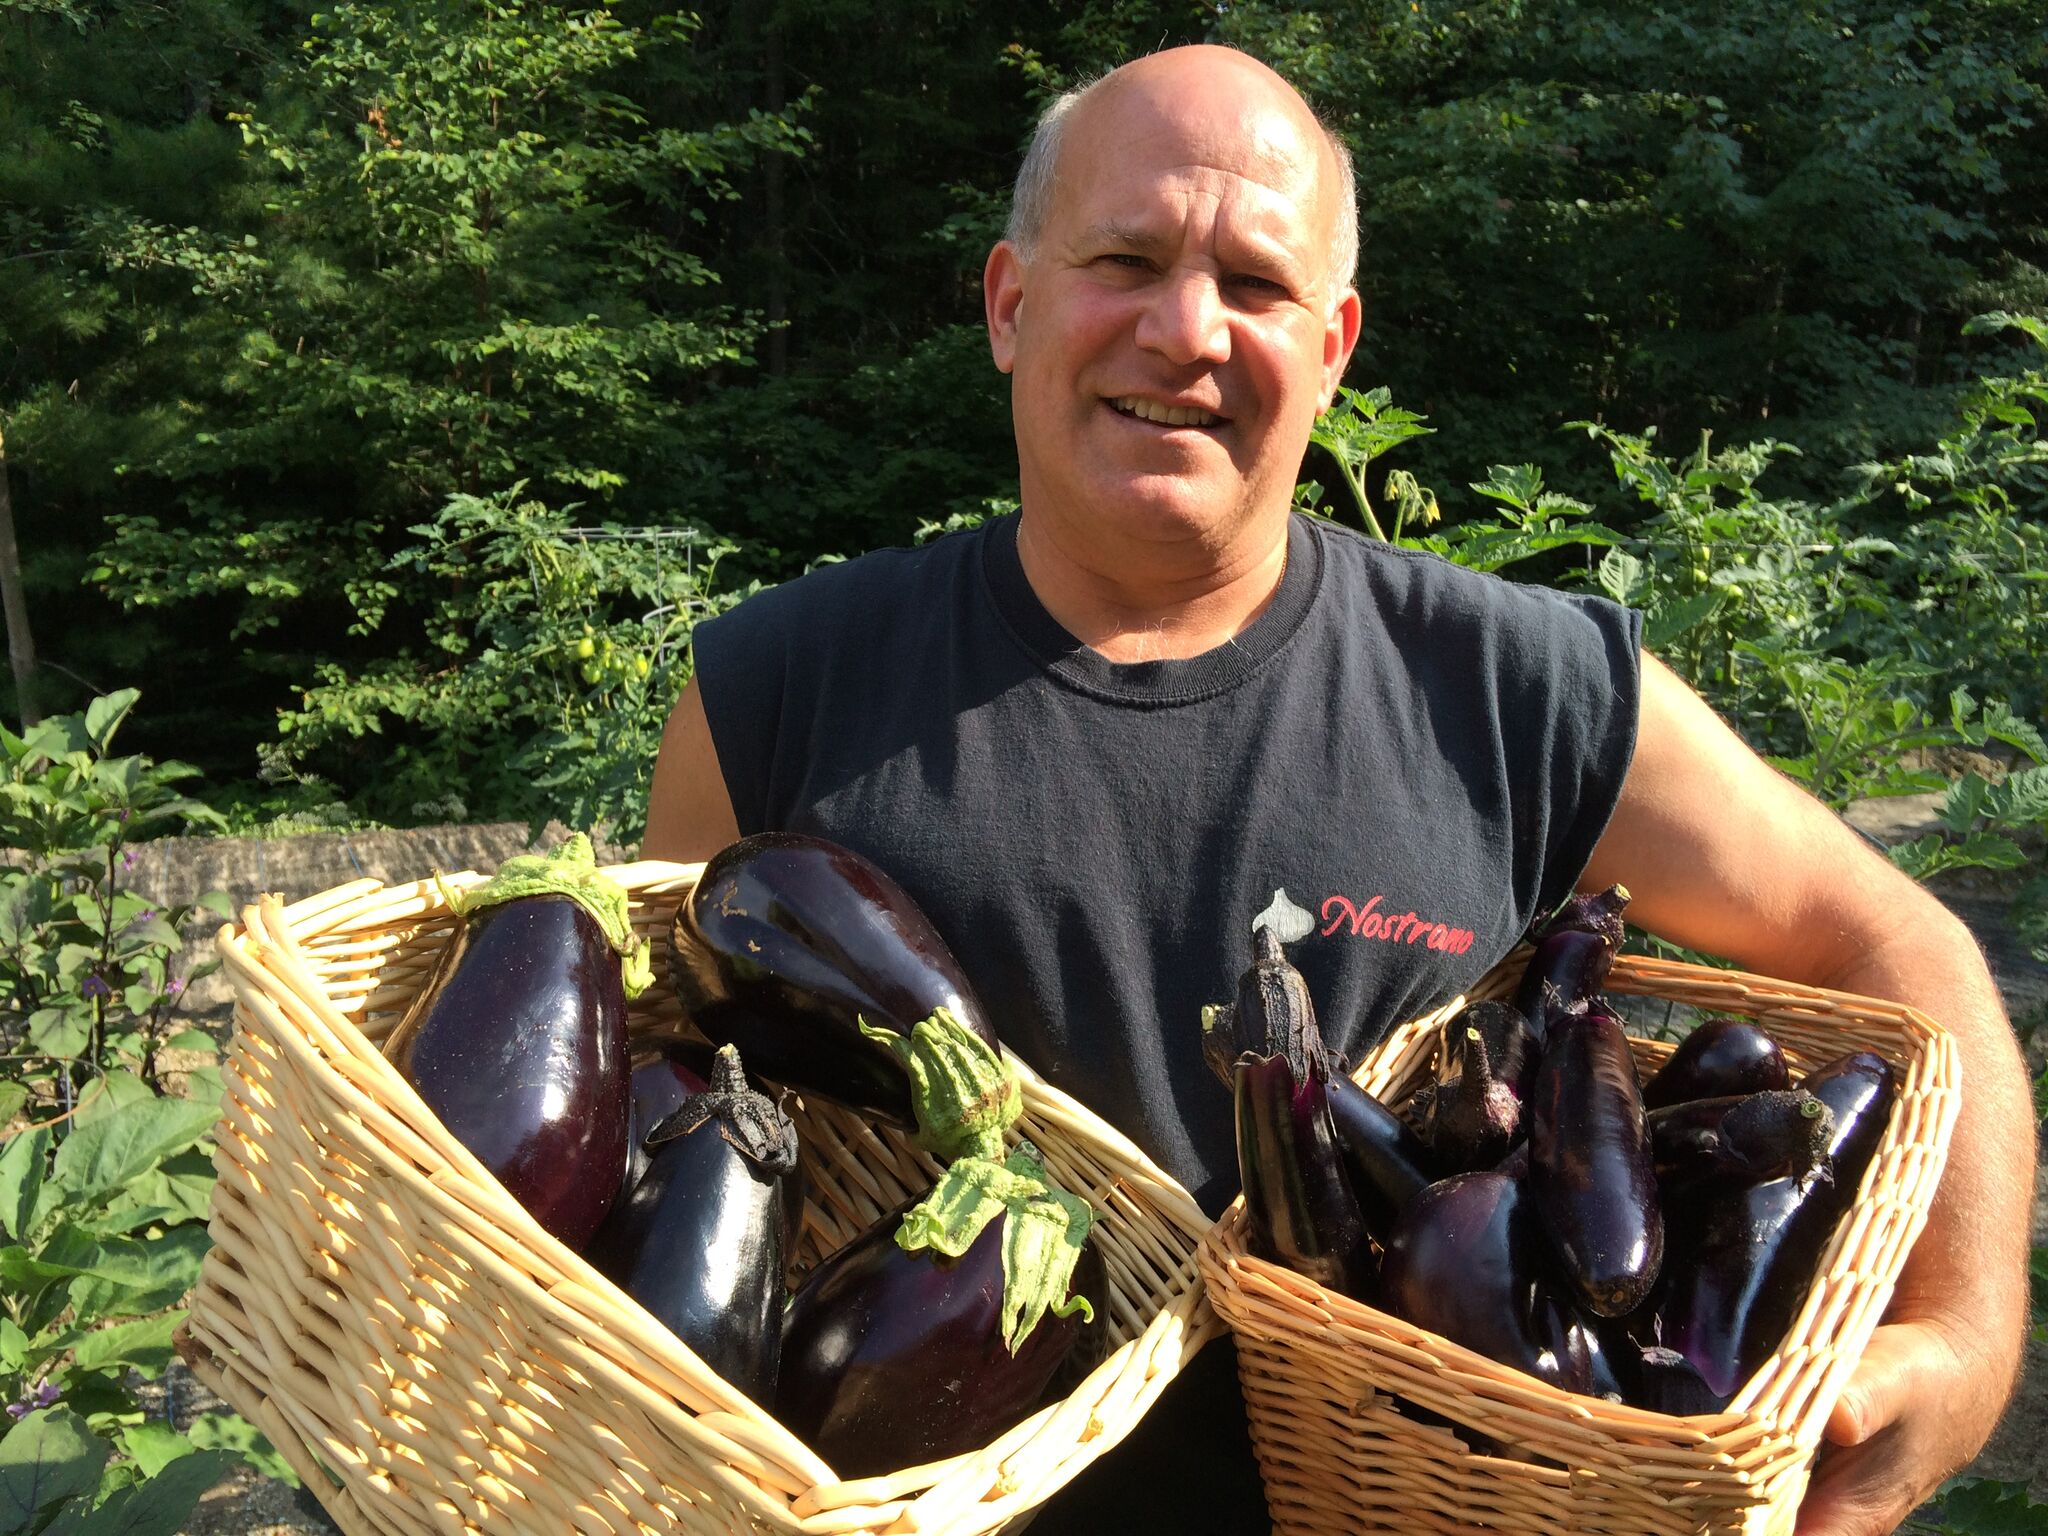 Chef Frank Pendola, harvesting organic eggplants from his own garden on their property.